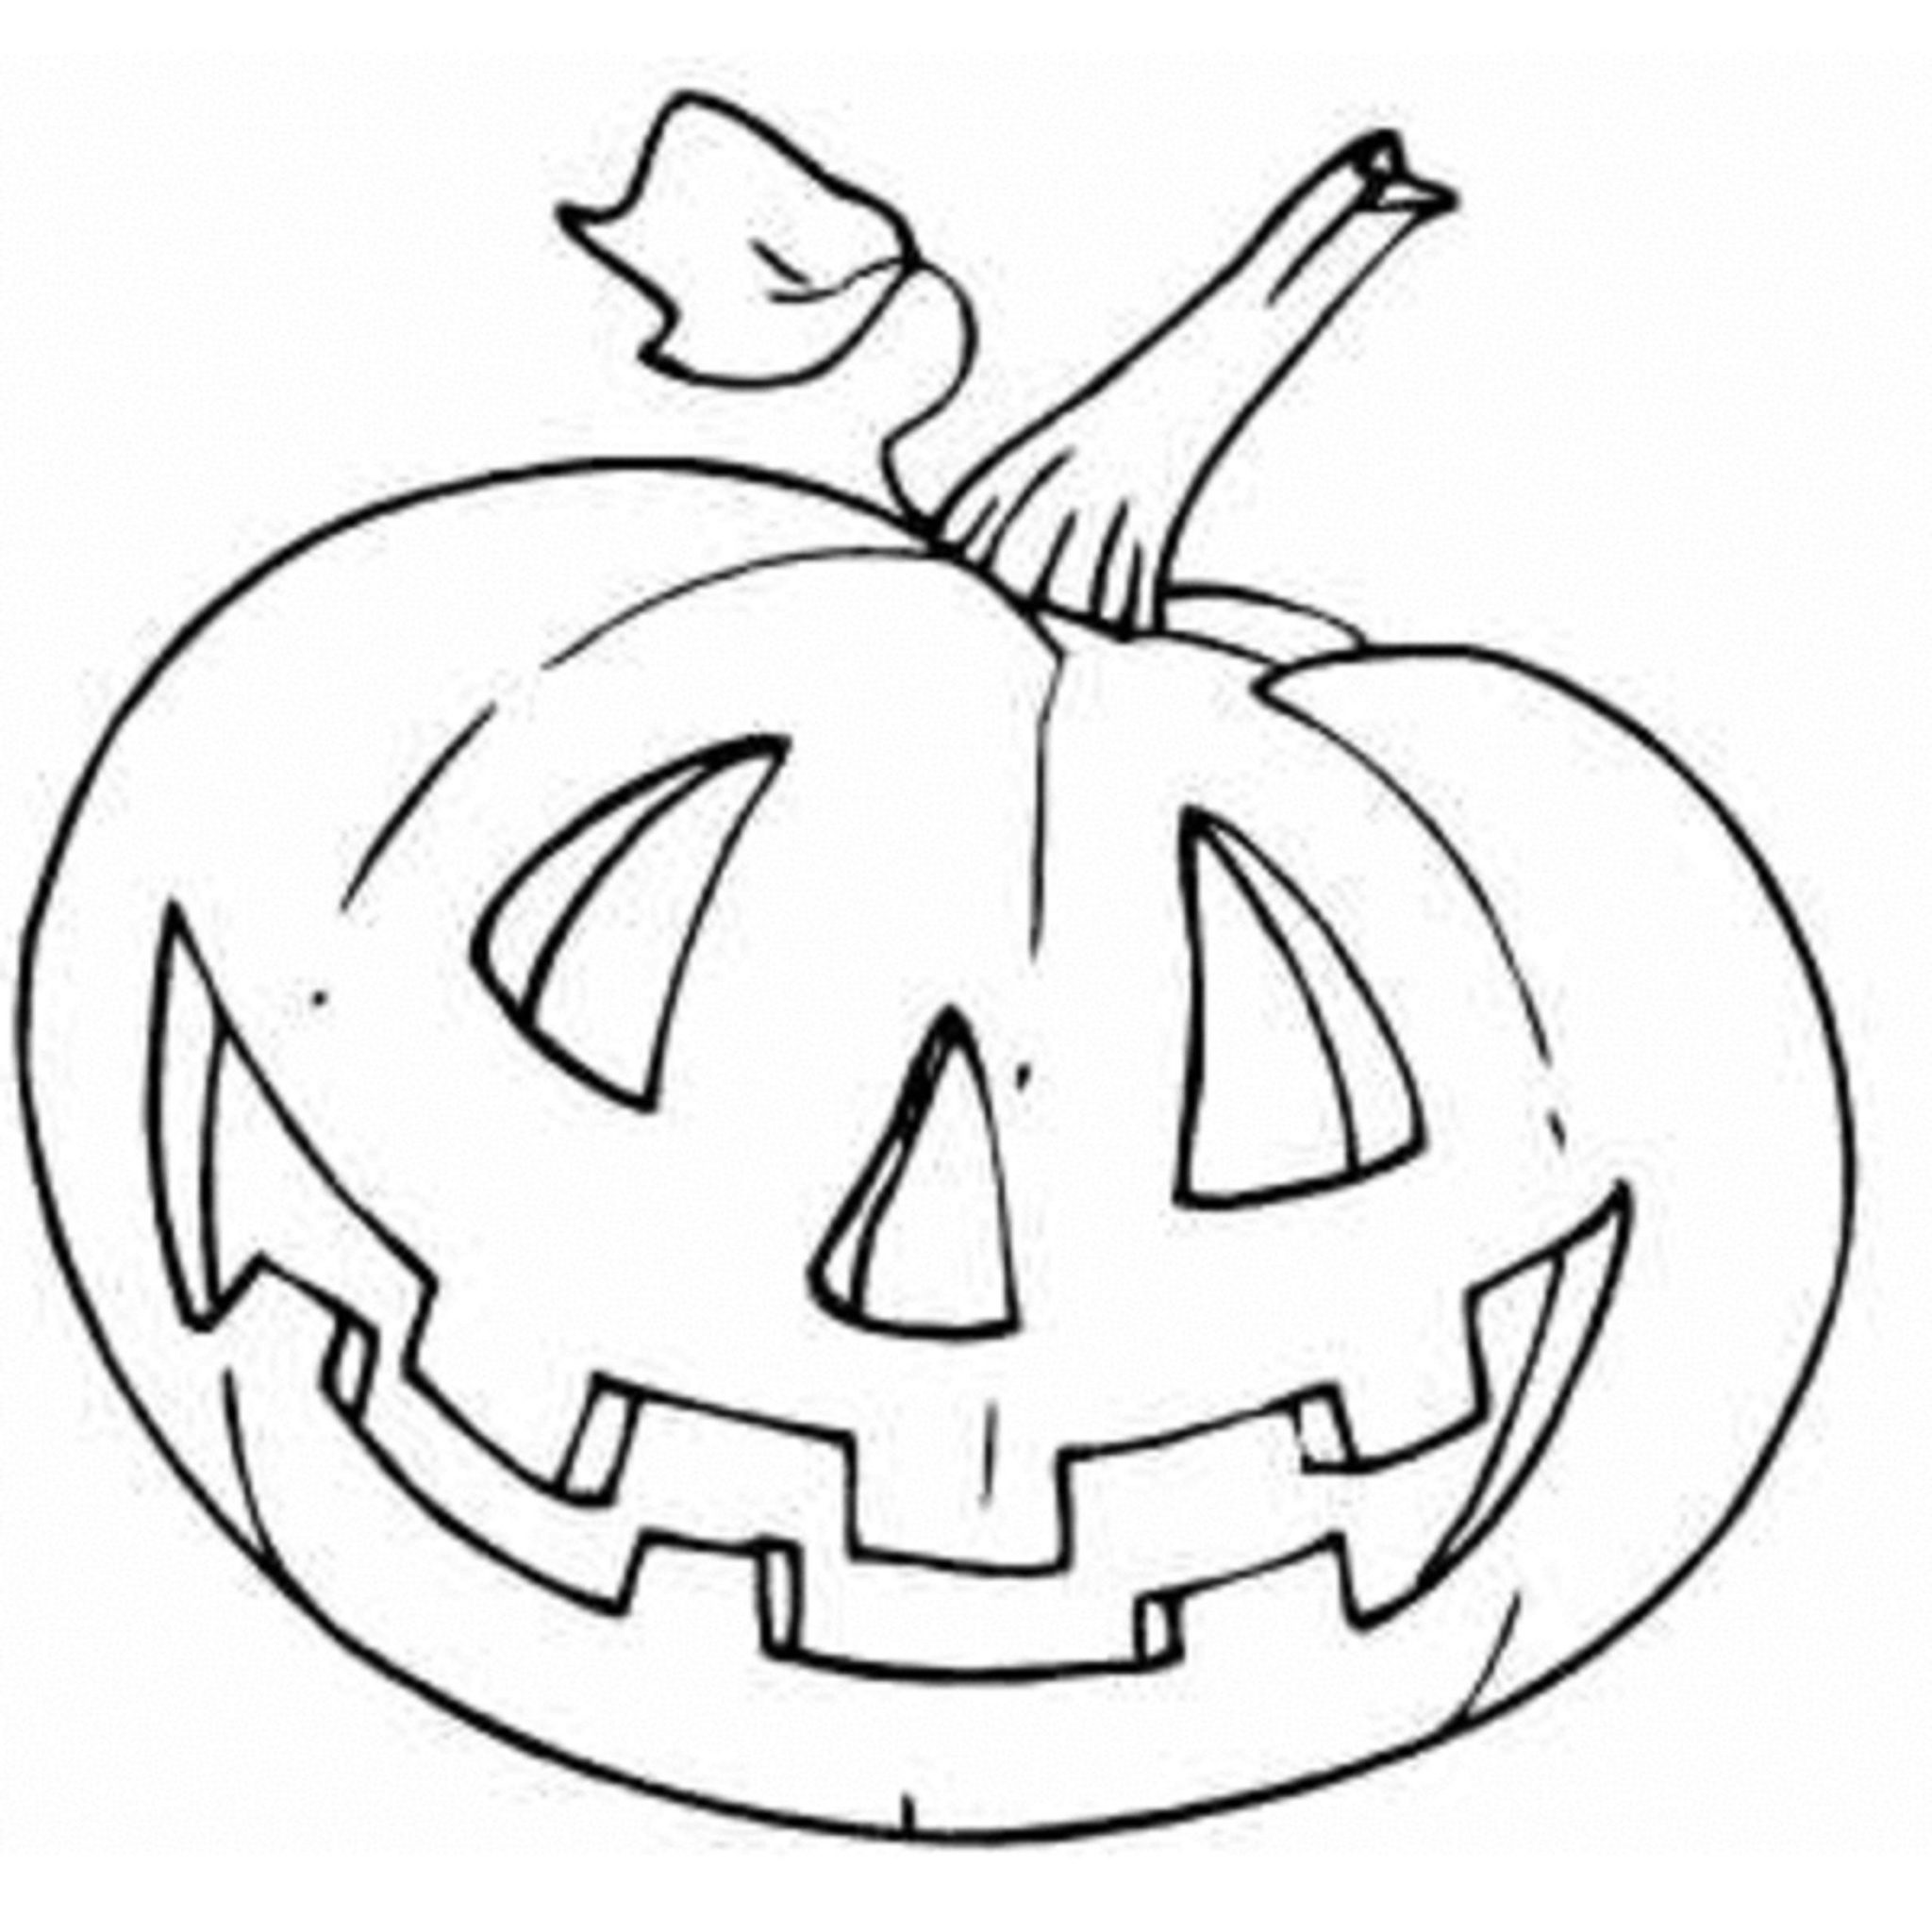 coloring page of a pumpkin print download pumpkin coloring pages and benefits of a coloring of pumpkin page